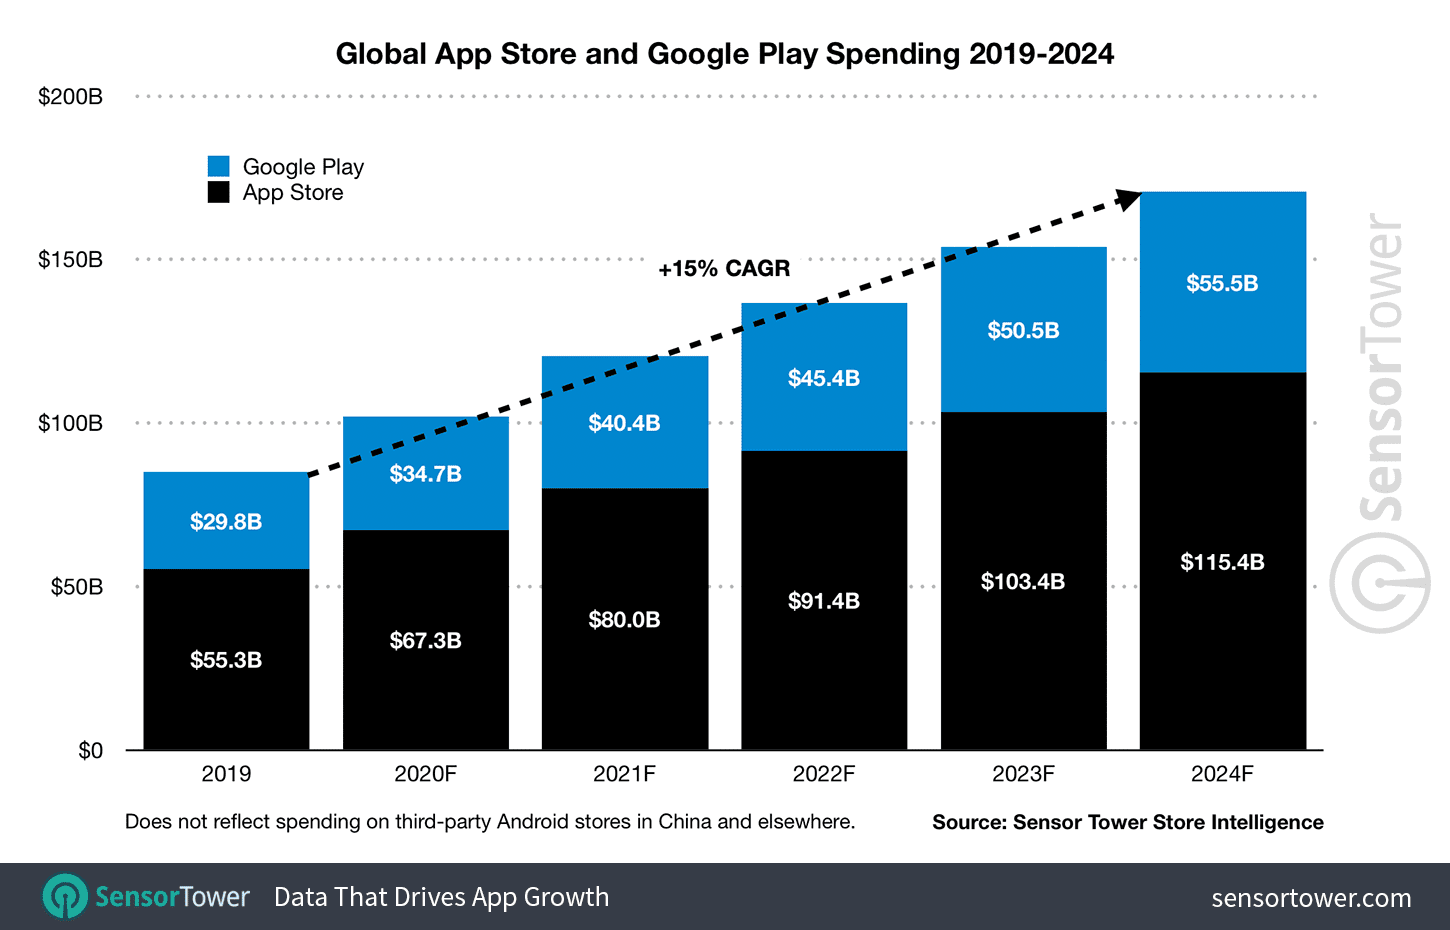 Global Spending In Google Play And Apple App Store Will Reach $171 Billion By 2024